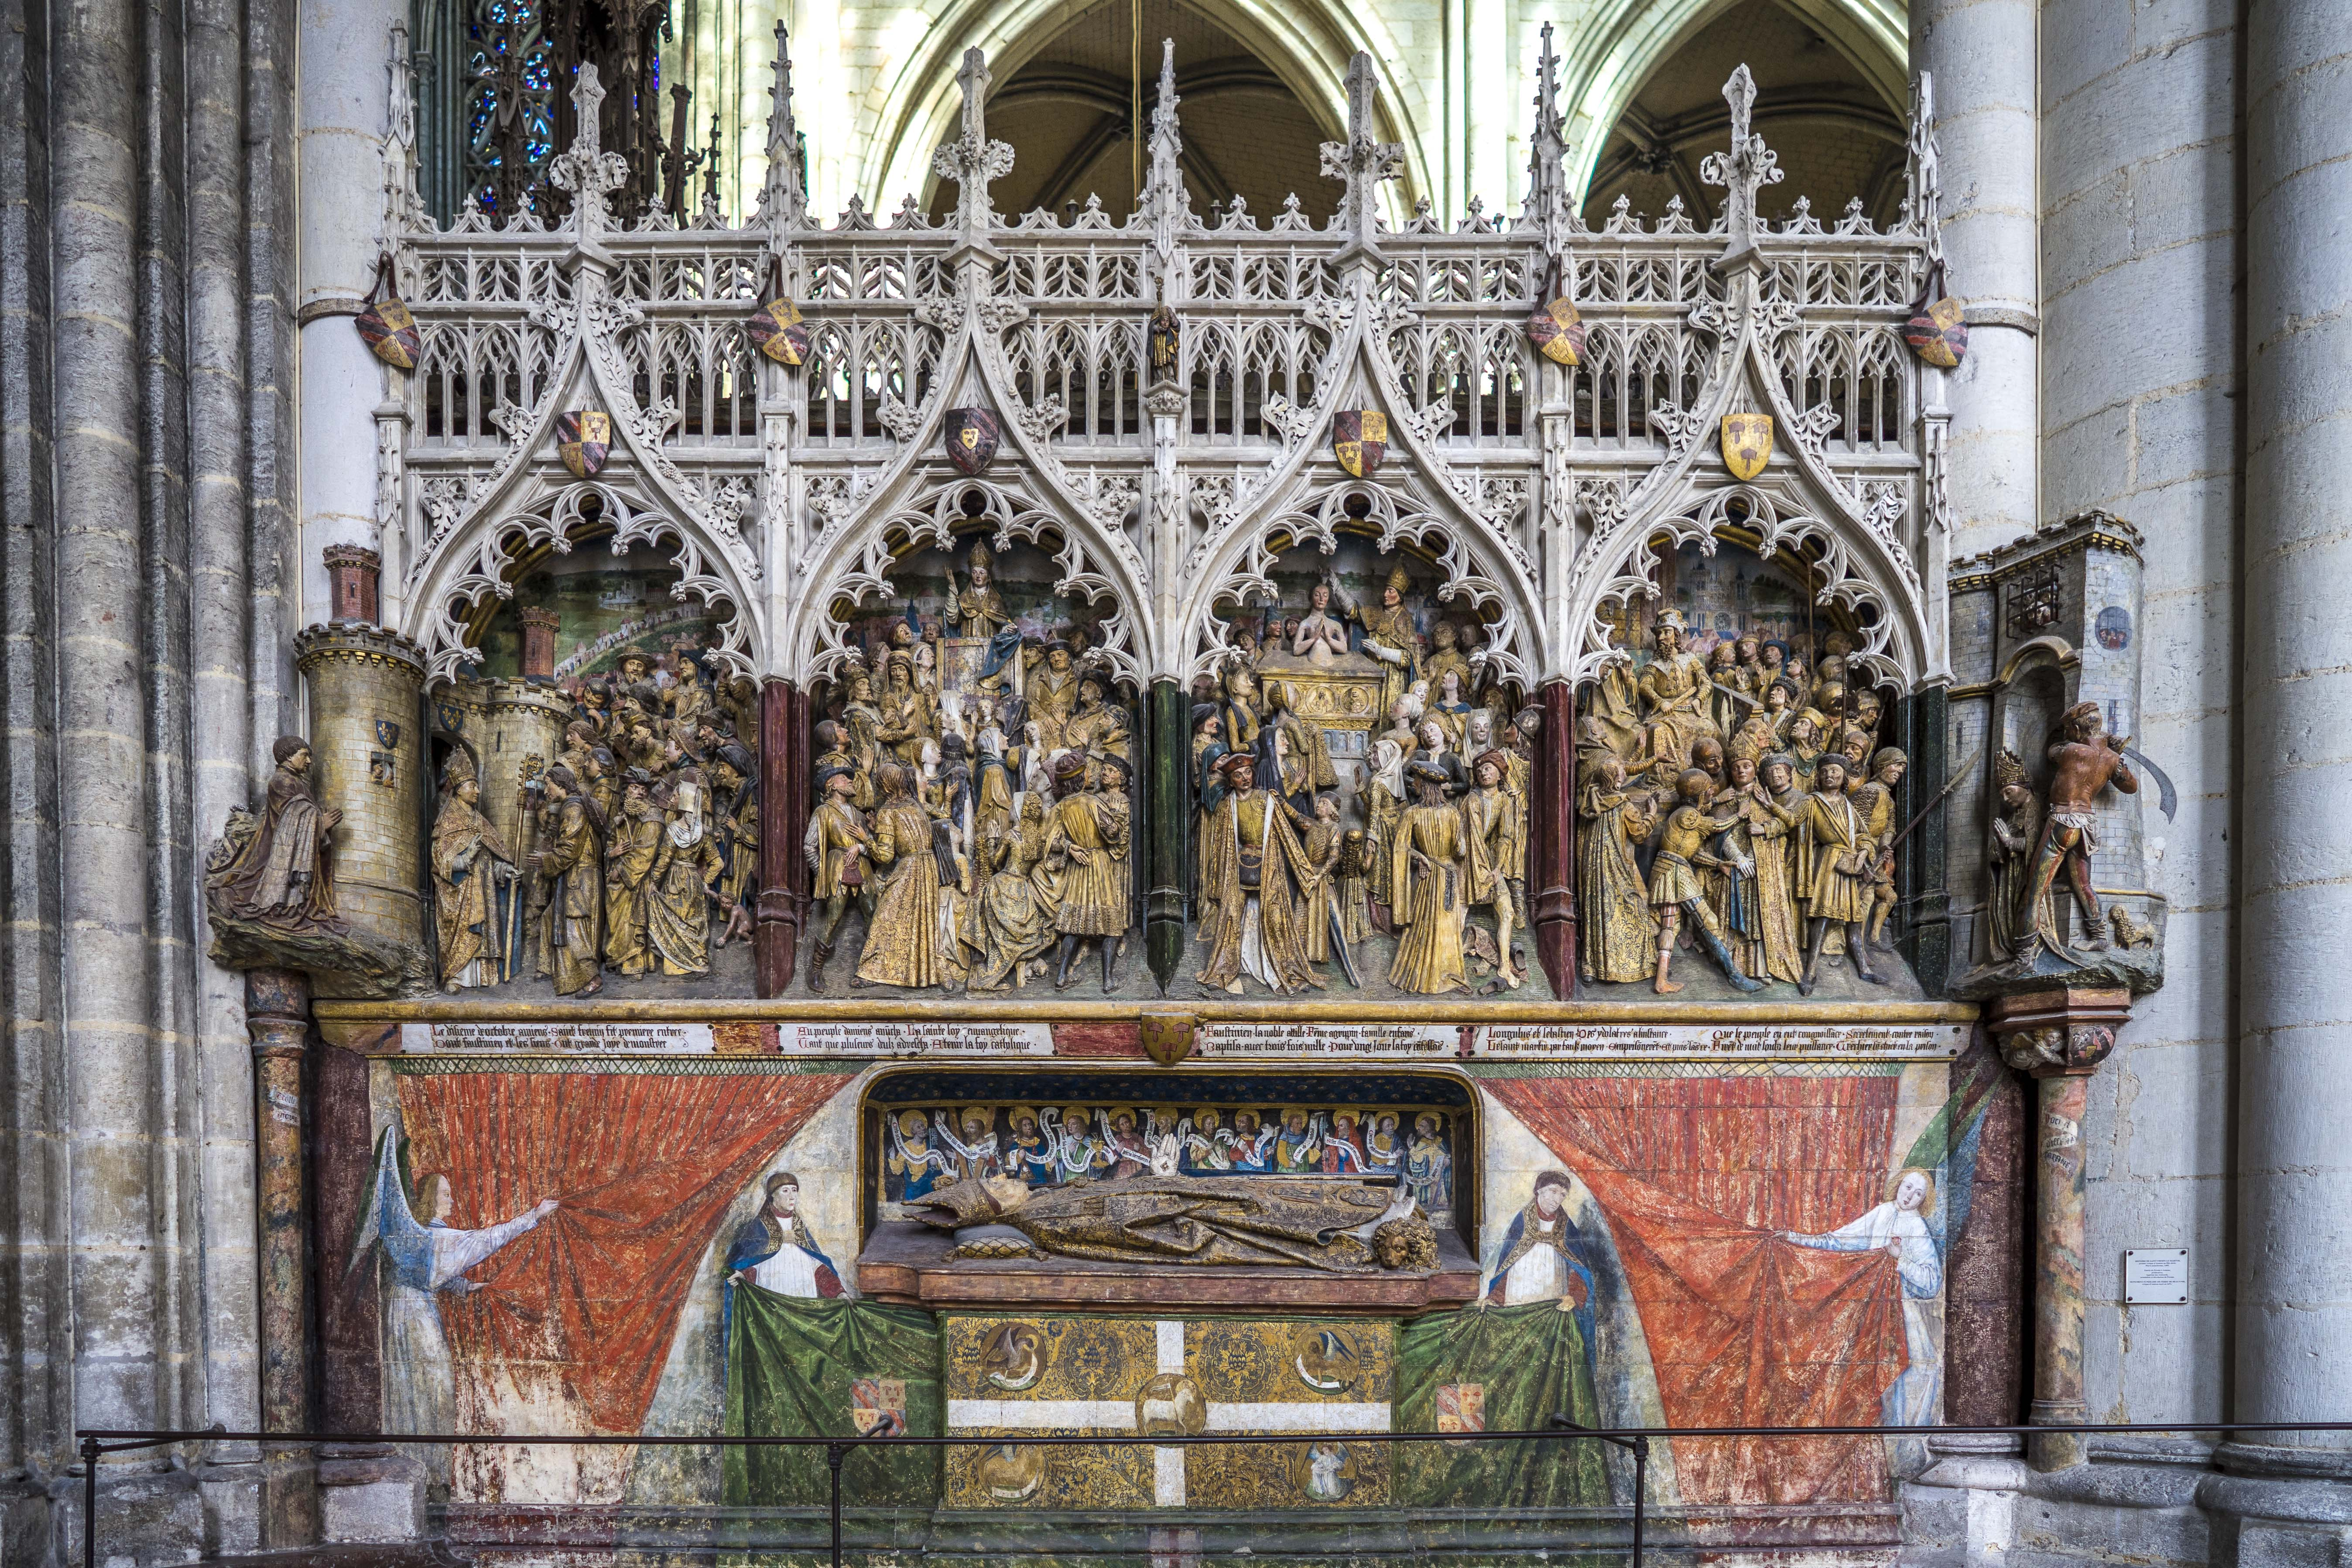 Amiens, France - Chancel Screen, first pane